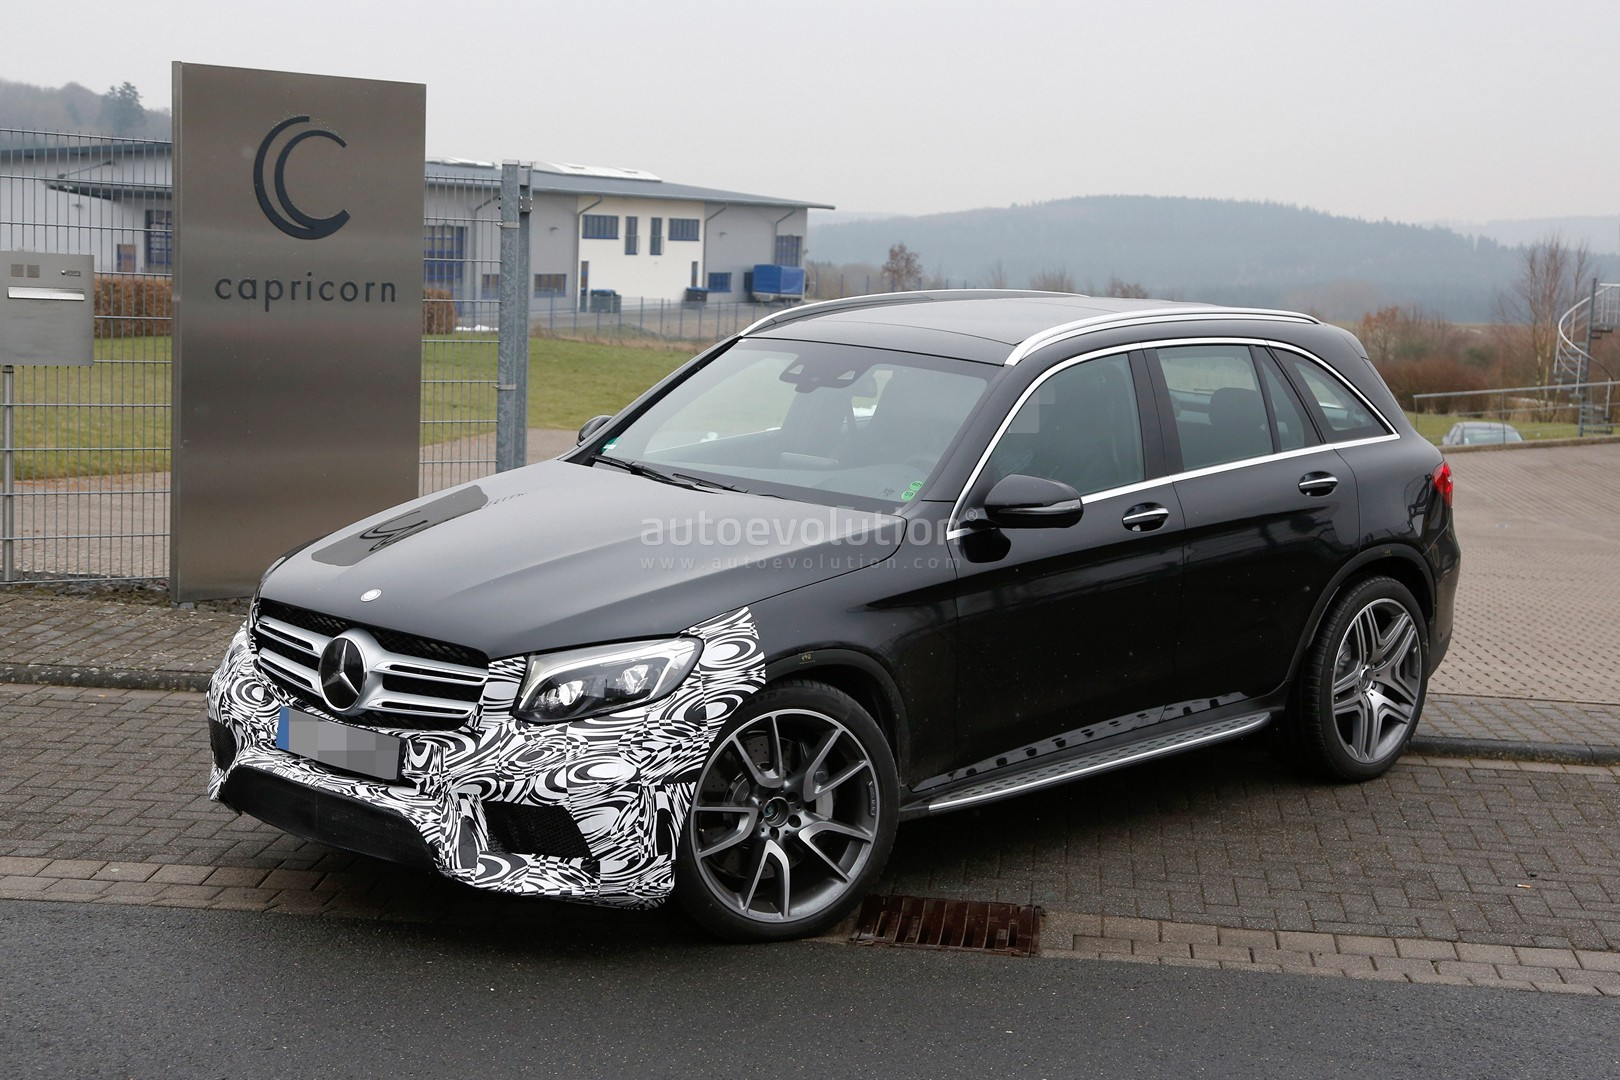 mercedes amg glc 63 test prototype seen for the first time autoevolution. Black Bedroom Furniture Sets. Home Design Ideas